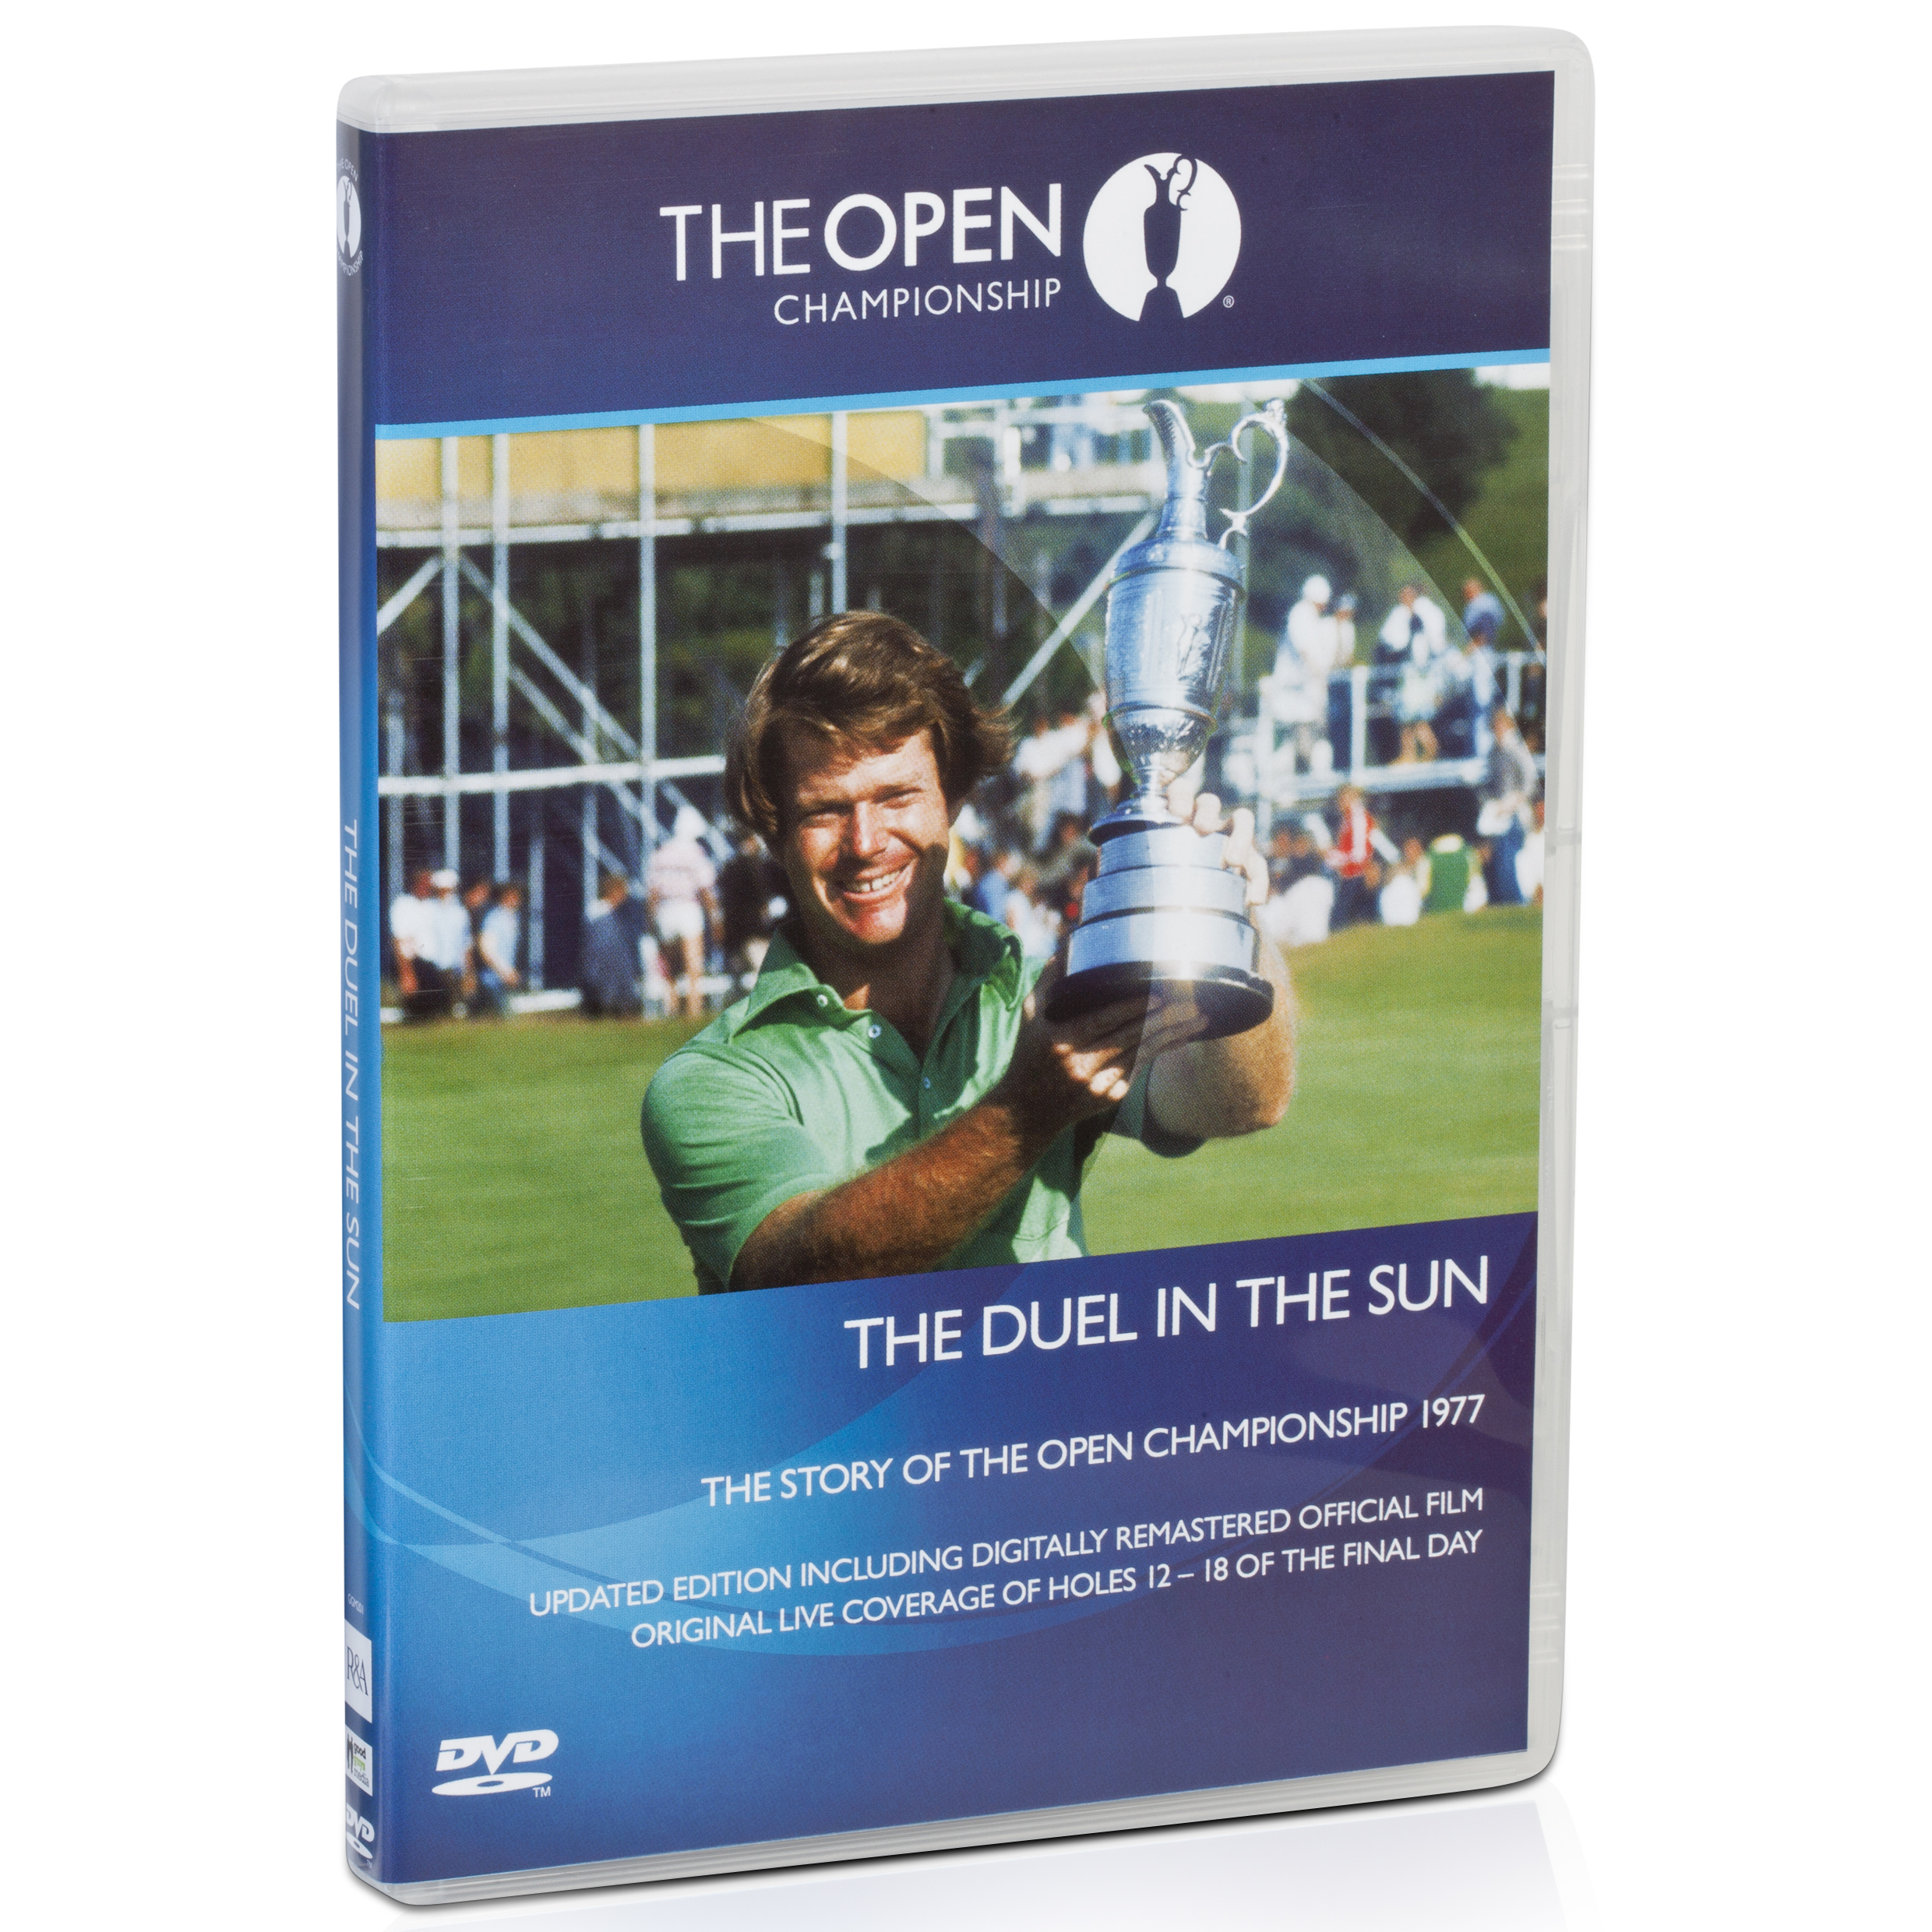 The Open Championship The Duel in the Sun: The Story of the Open Championship 1977